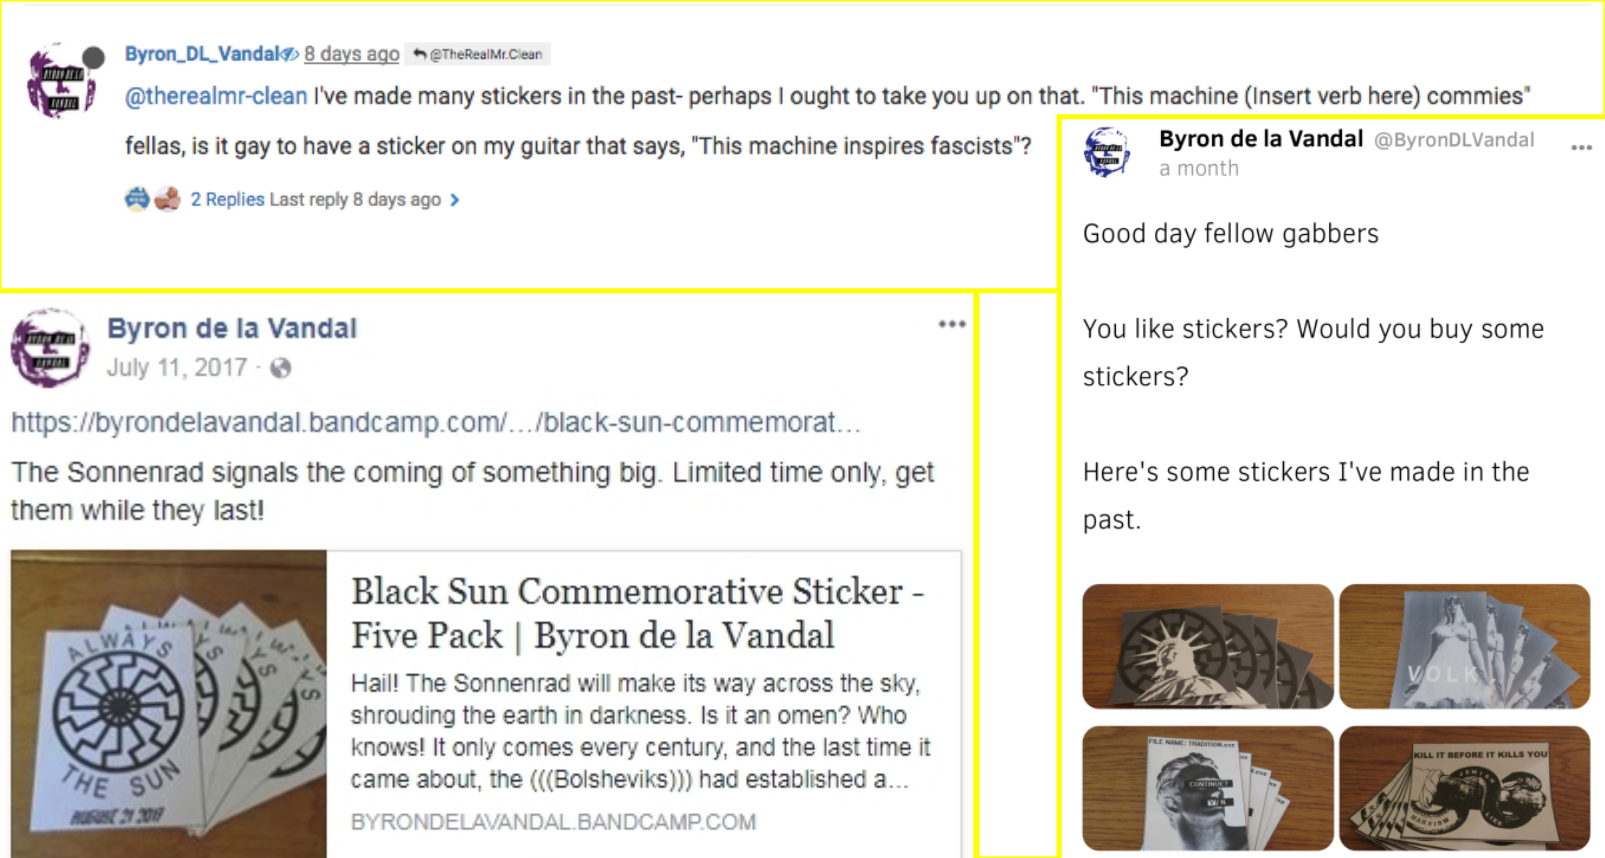 Byron de la Vandal offers to sell stickers over the internet